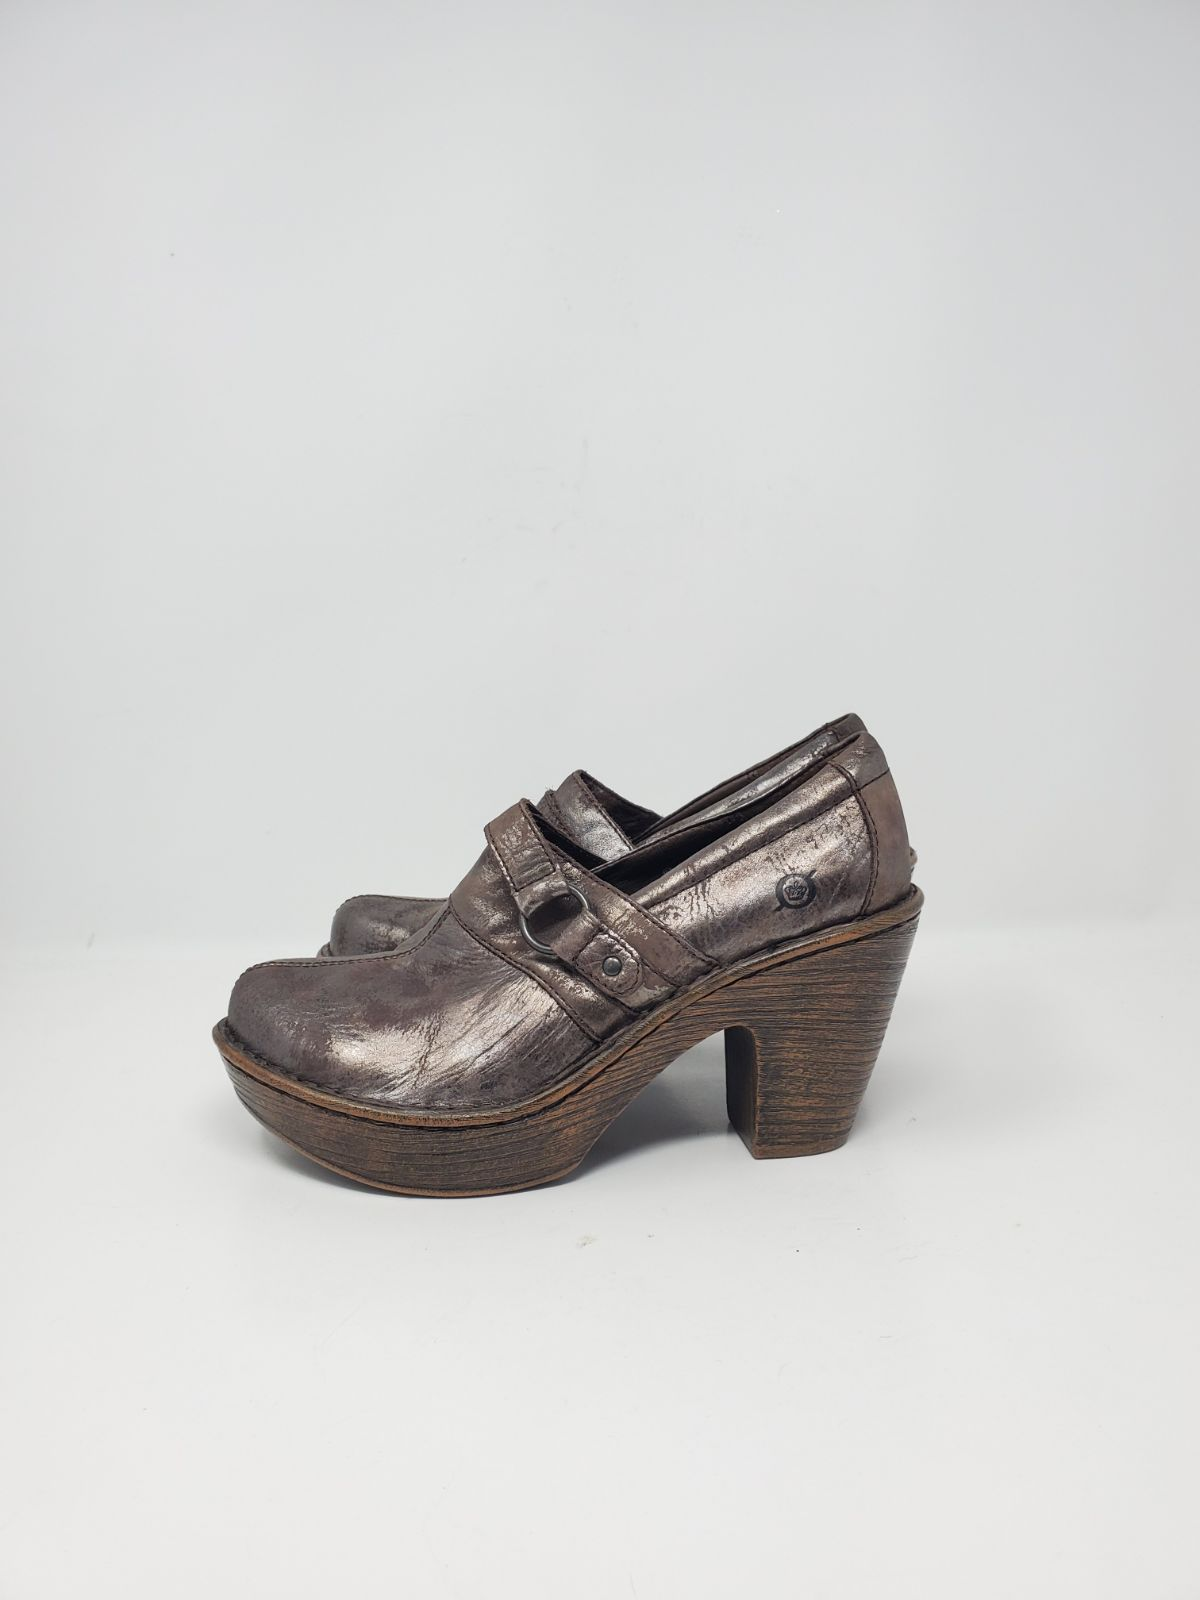 NEW Born brown heeled leather shoes